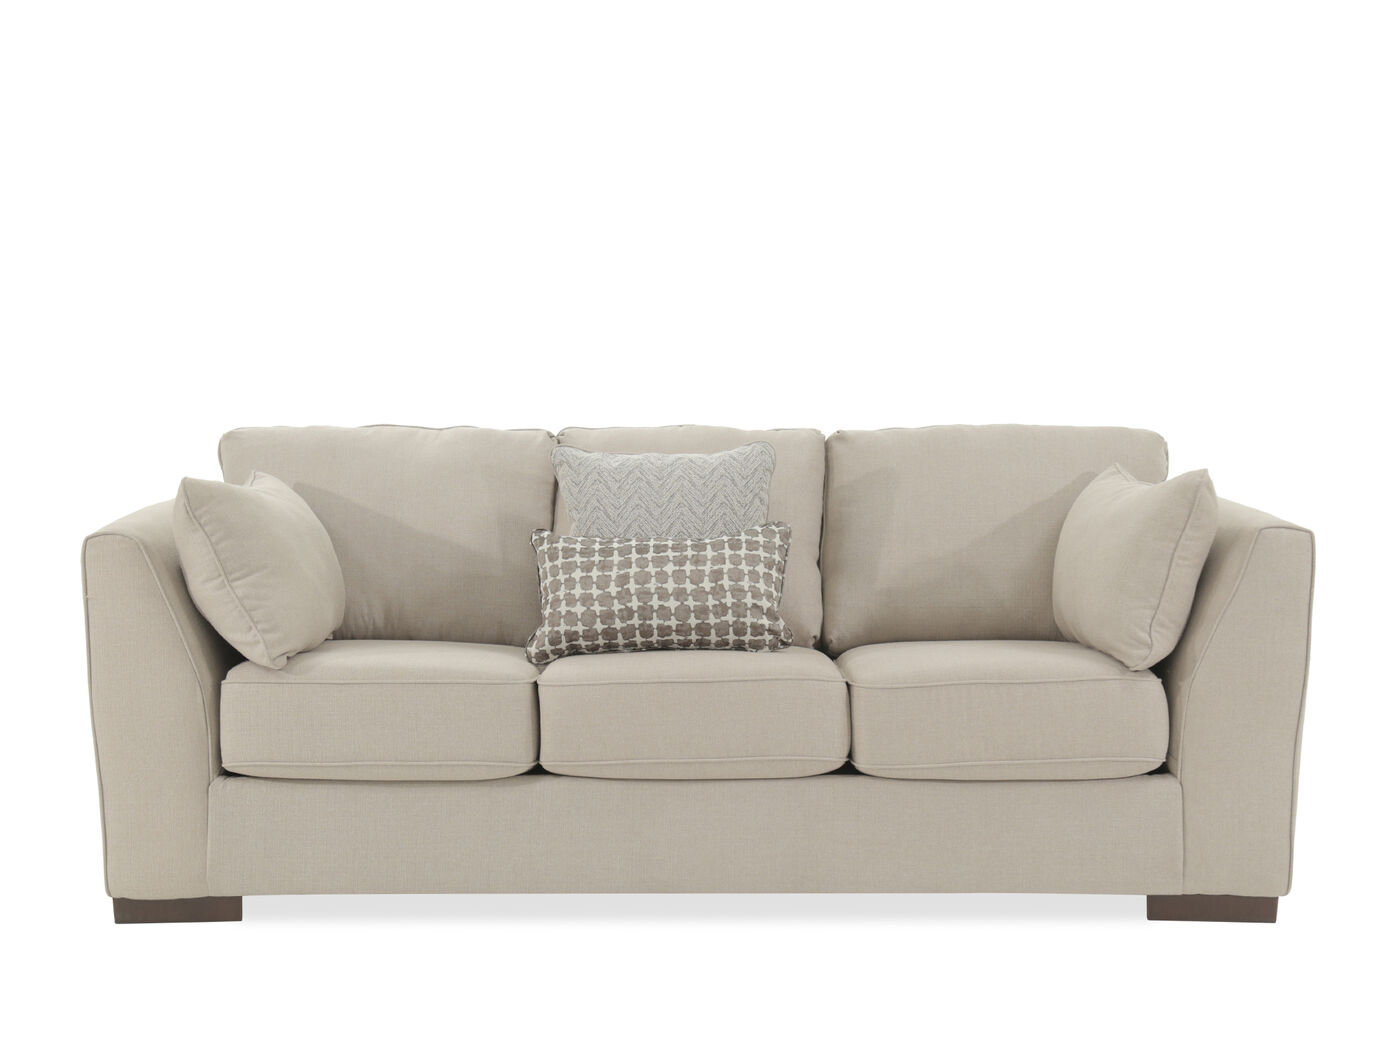 Ledersofa creme  Sofas & Couches | Mathis Brothers Furniture Stores